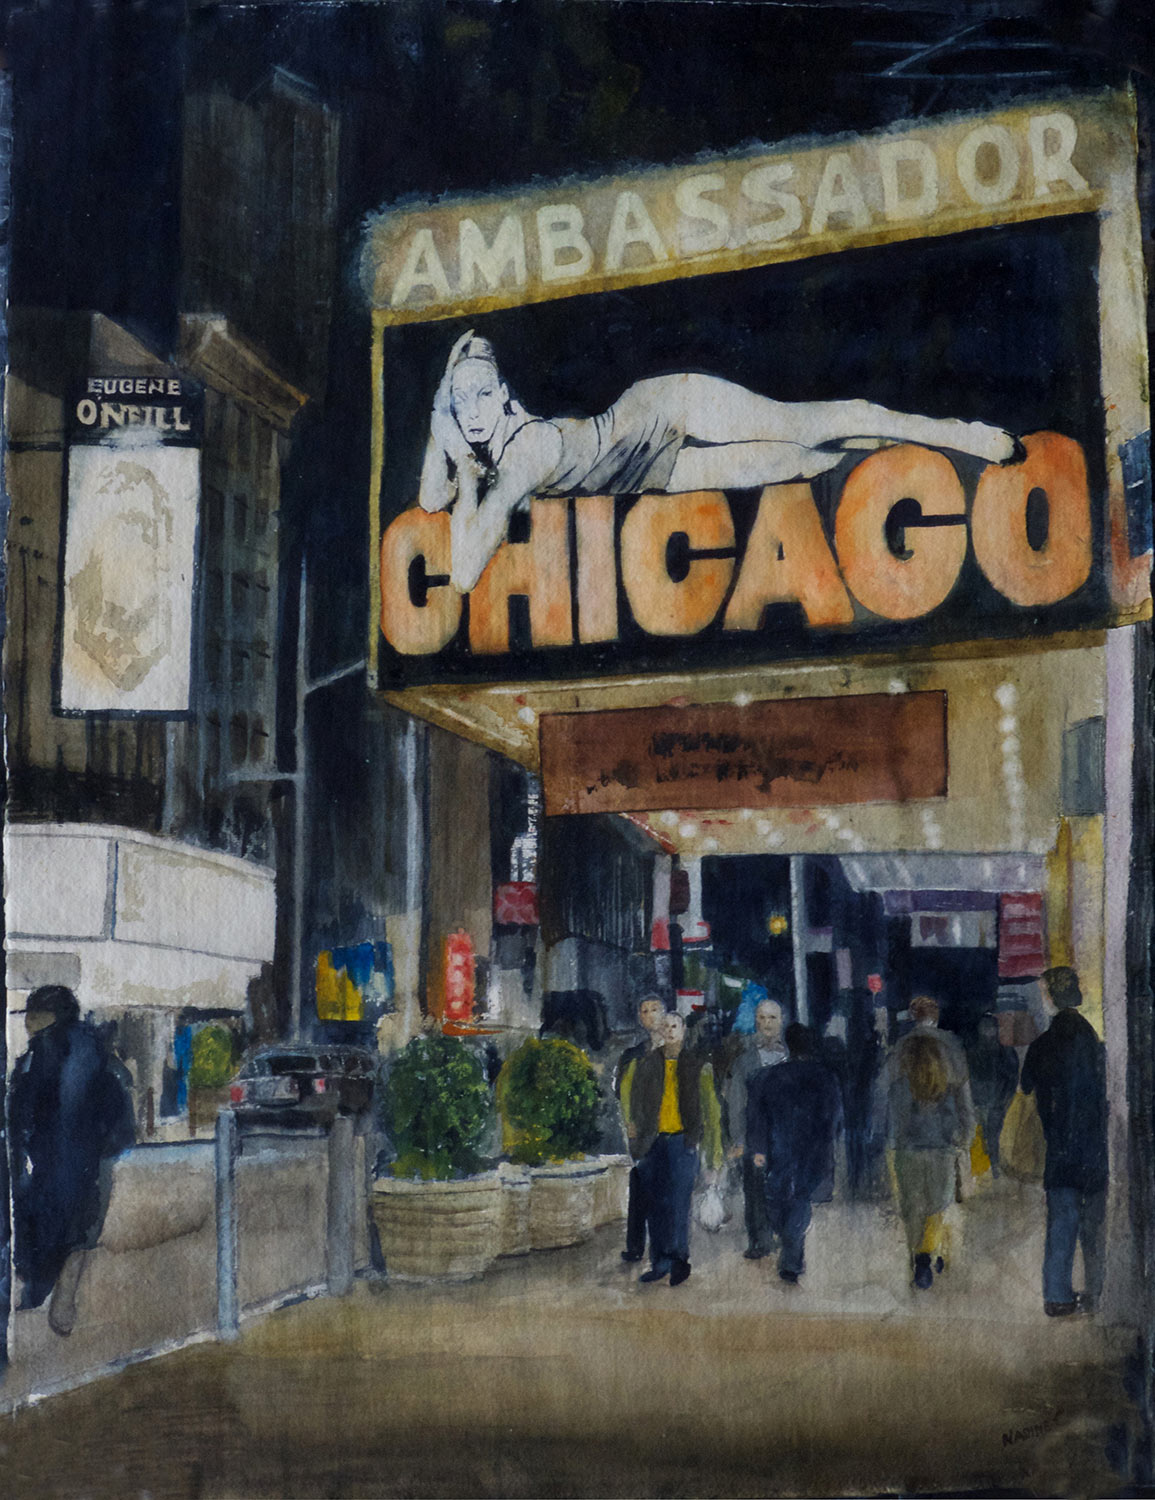 CHICAGO-49th STREET NYC